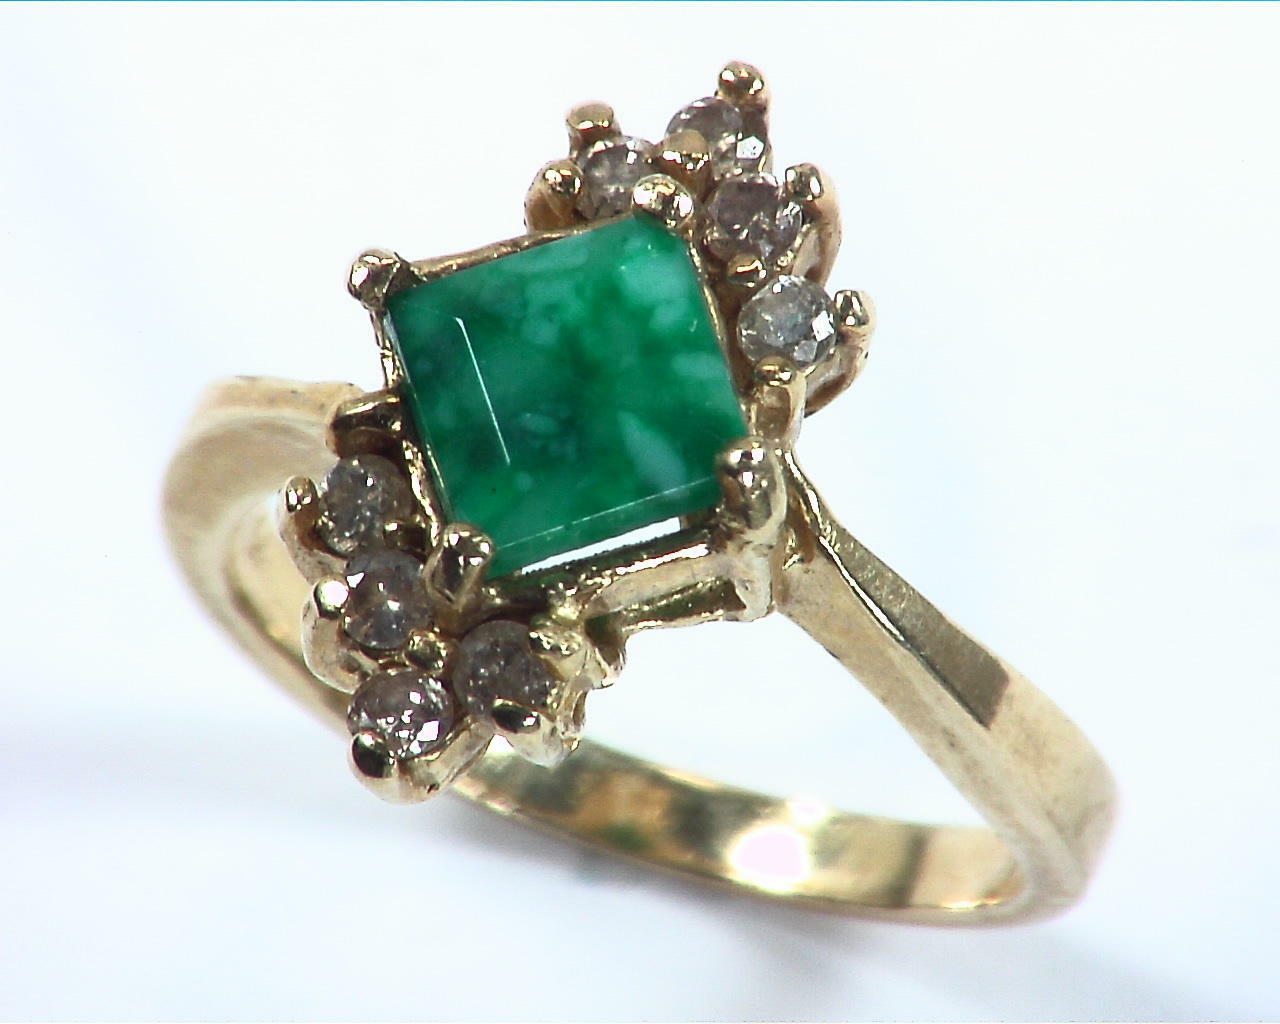 Emerald Natural Genuine Gemstone Gold And Diamond Ring RFK,158